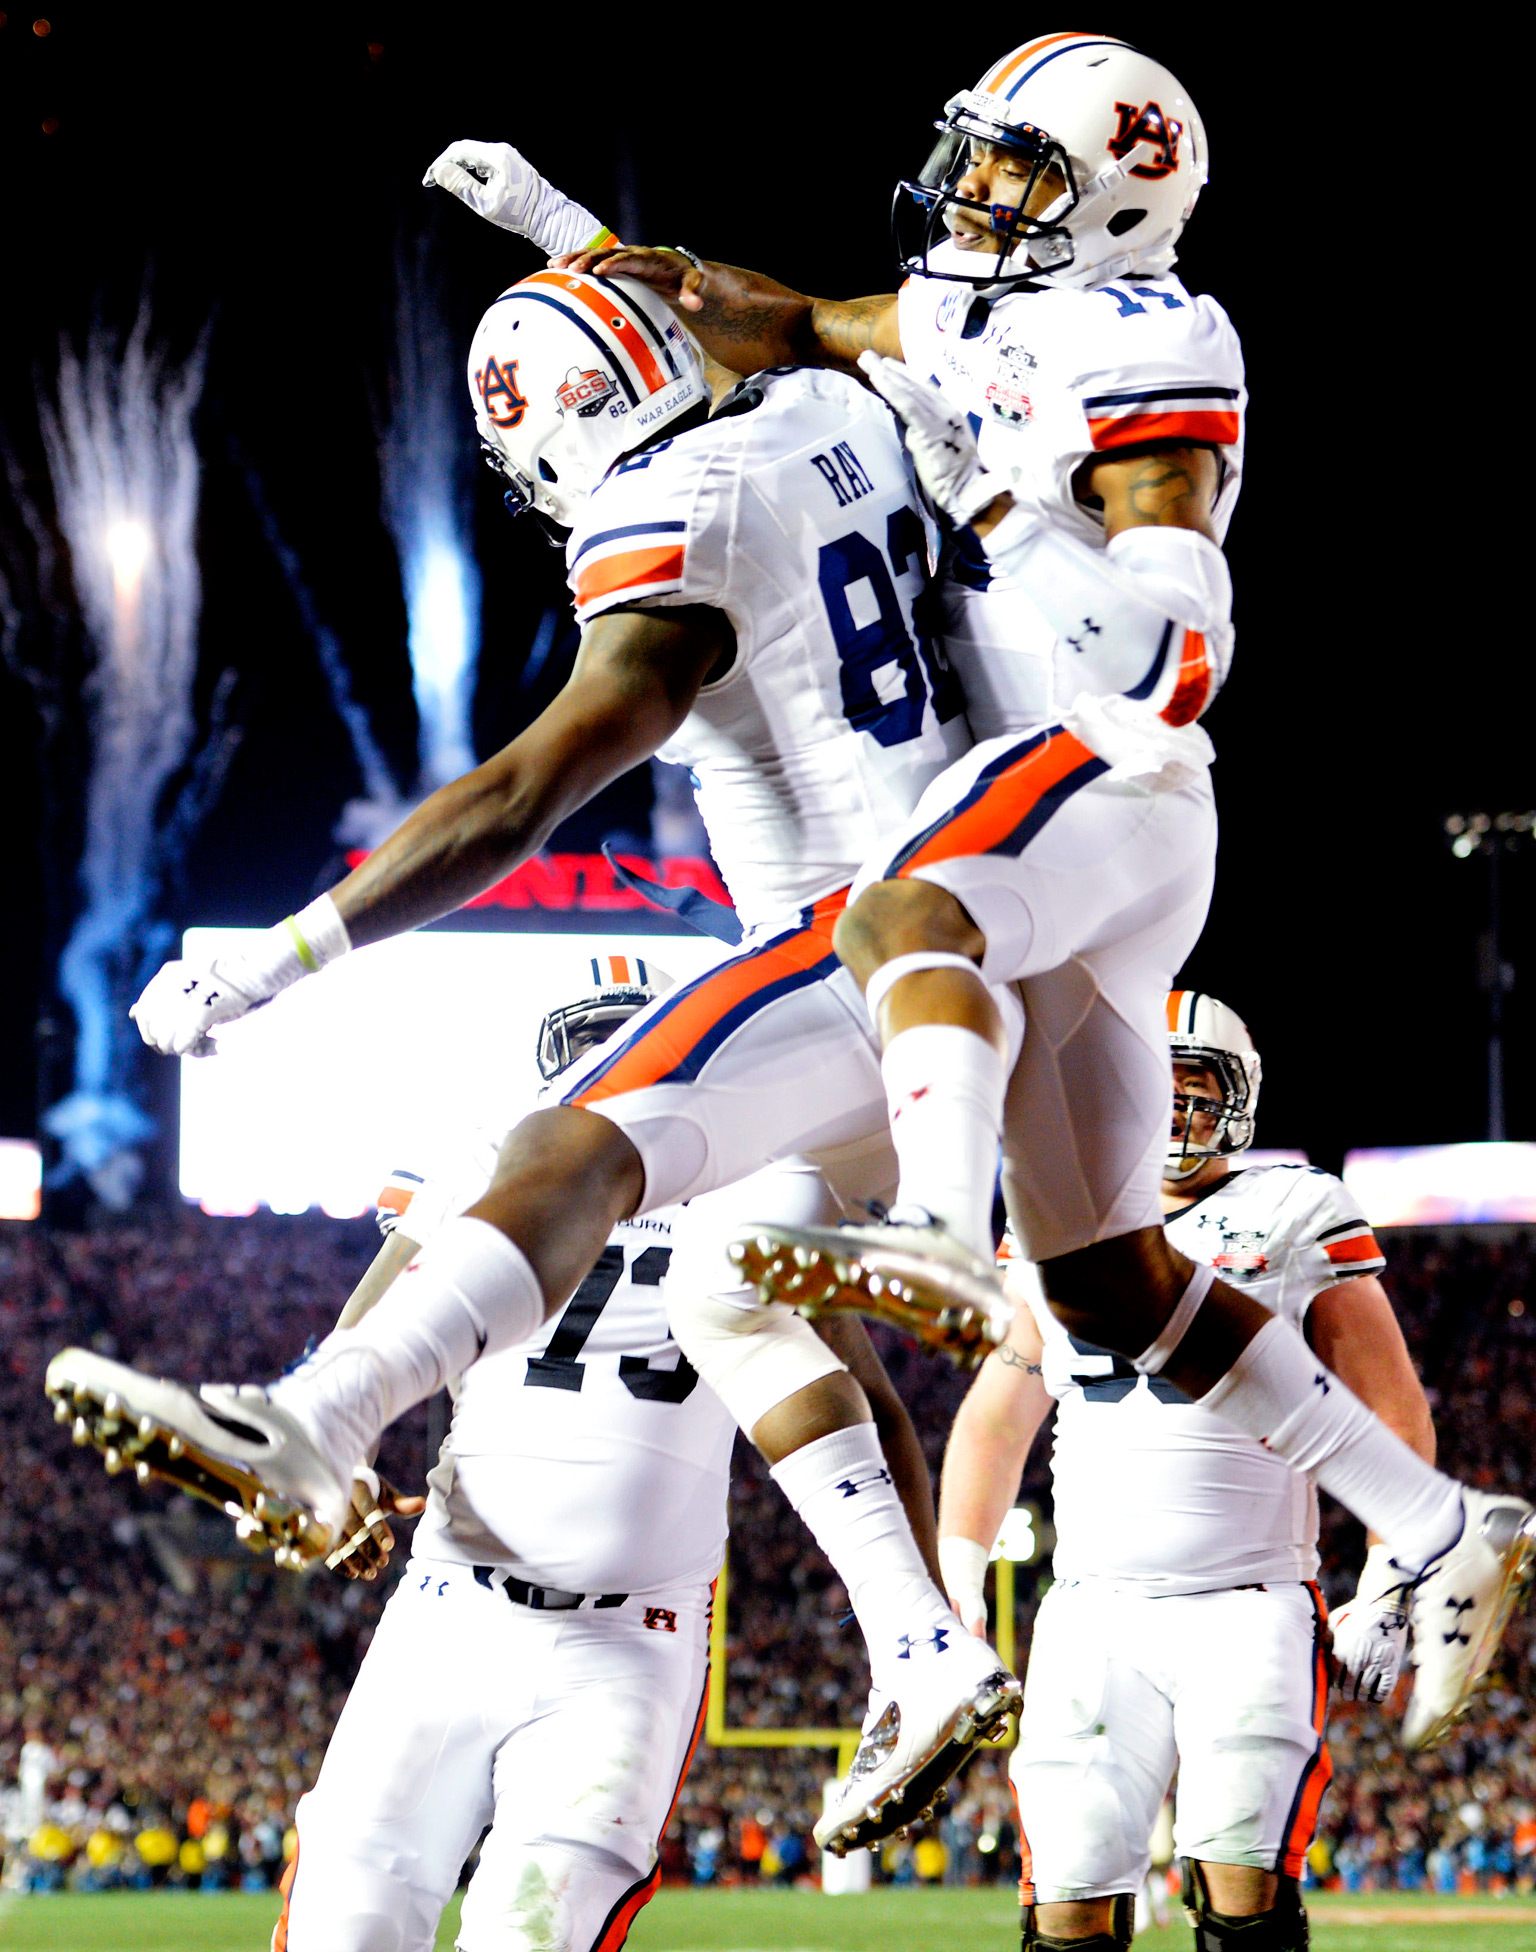 Auburn Tigers celebrate - 2013 BCS National Championship ...